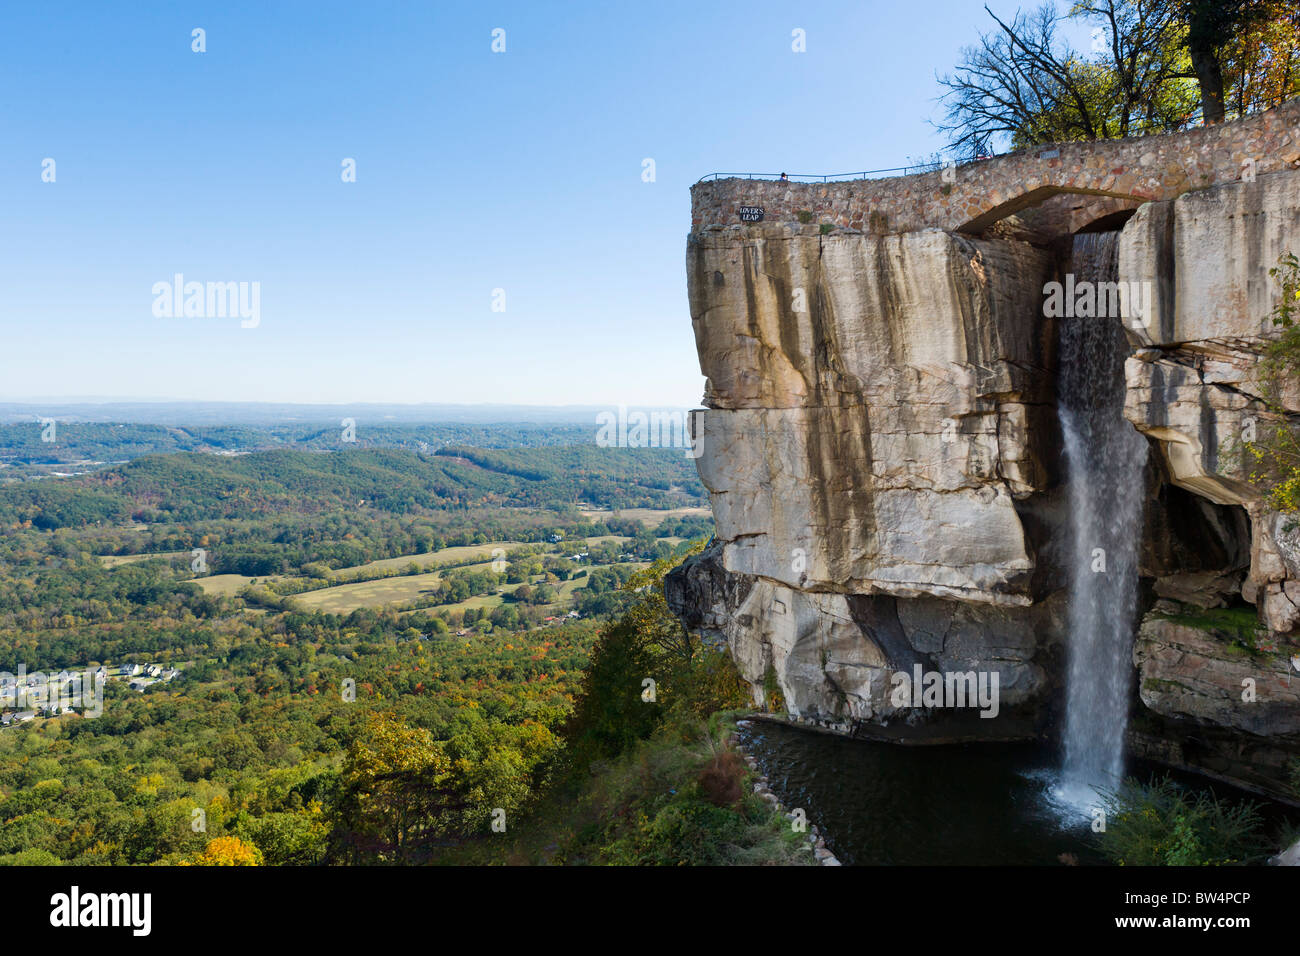 Lover's Leap in Rock City Gardens on Lookout Mountain, Georgia, near Chattanooga, Tennessee, USA - Stock Image